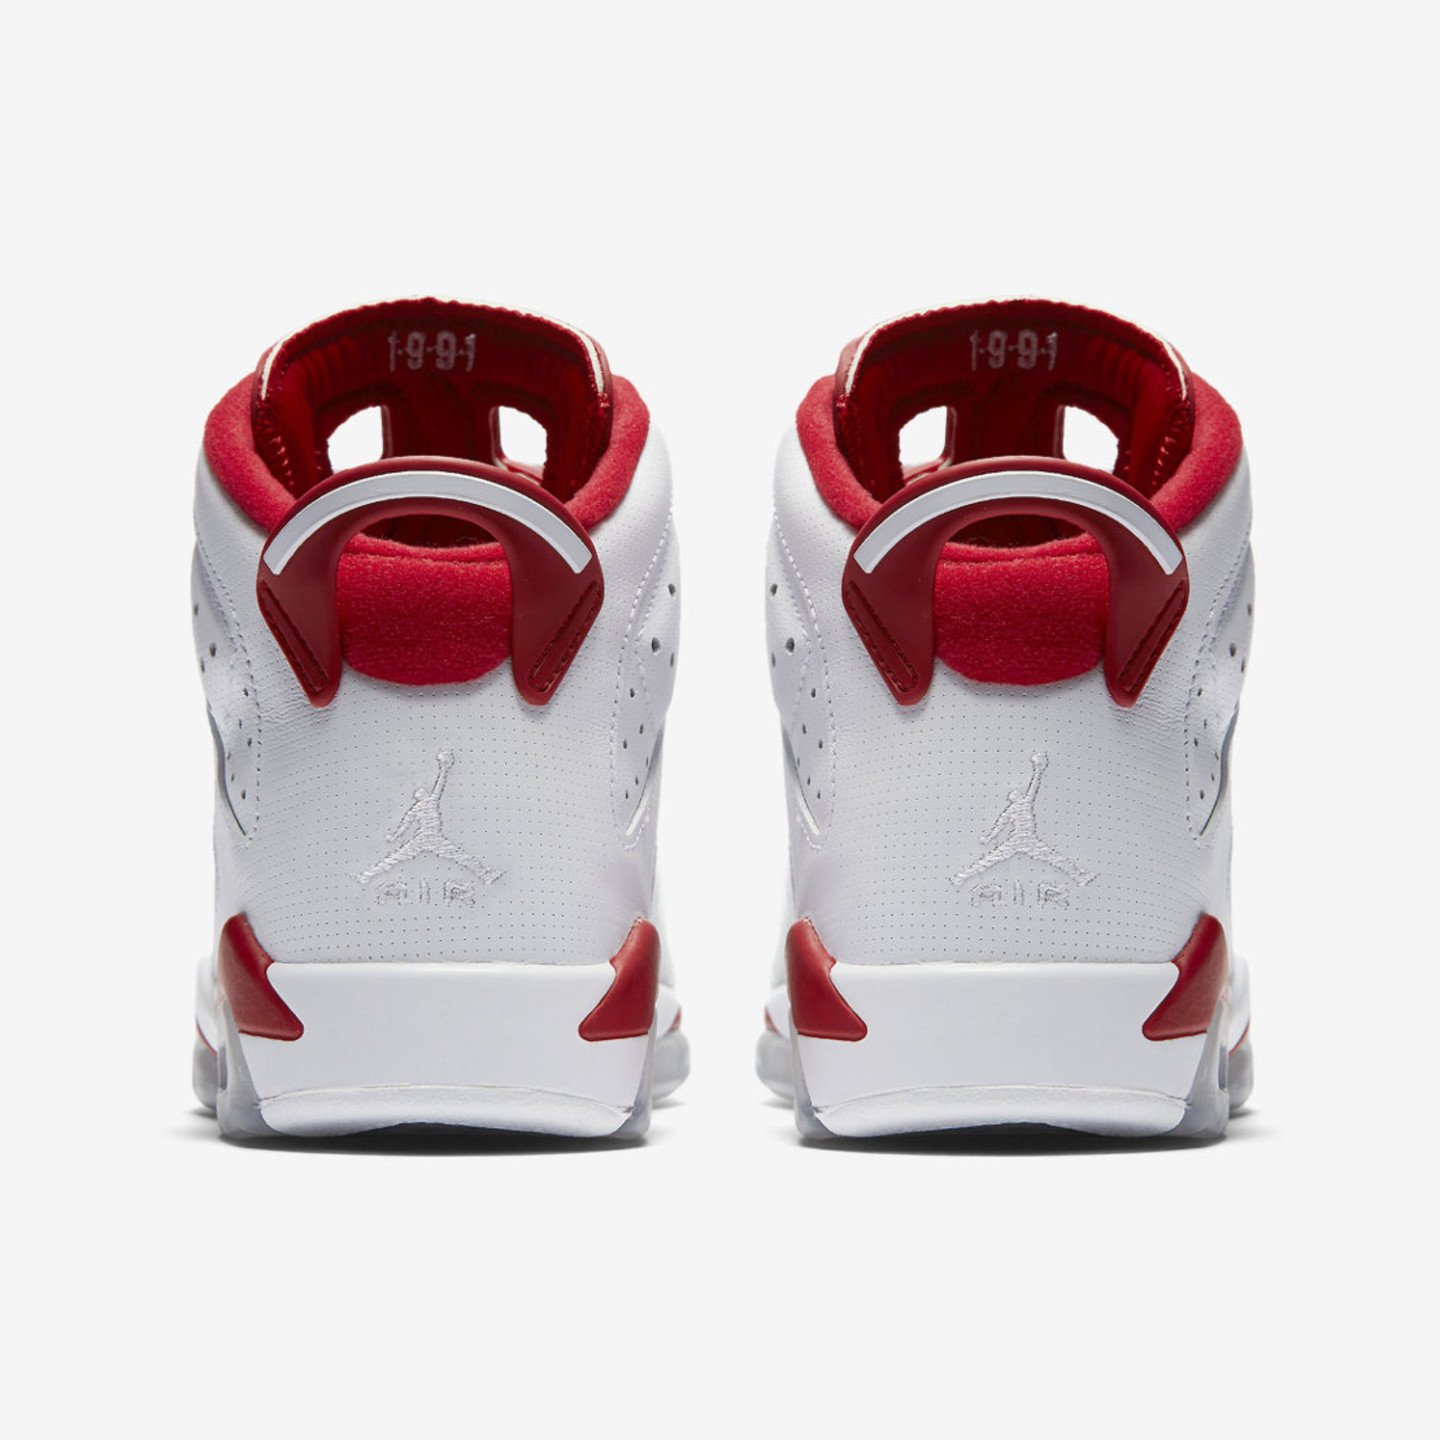 Jordan Air Jordan 6 Retro Alternate GS White / Pure Platinum / Gym Red 384665-113